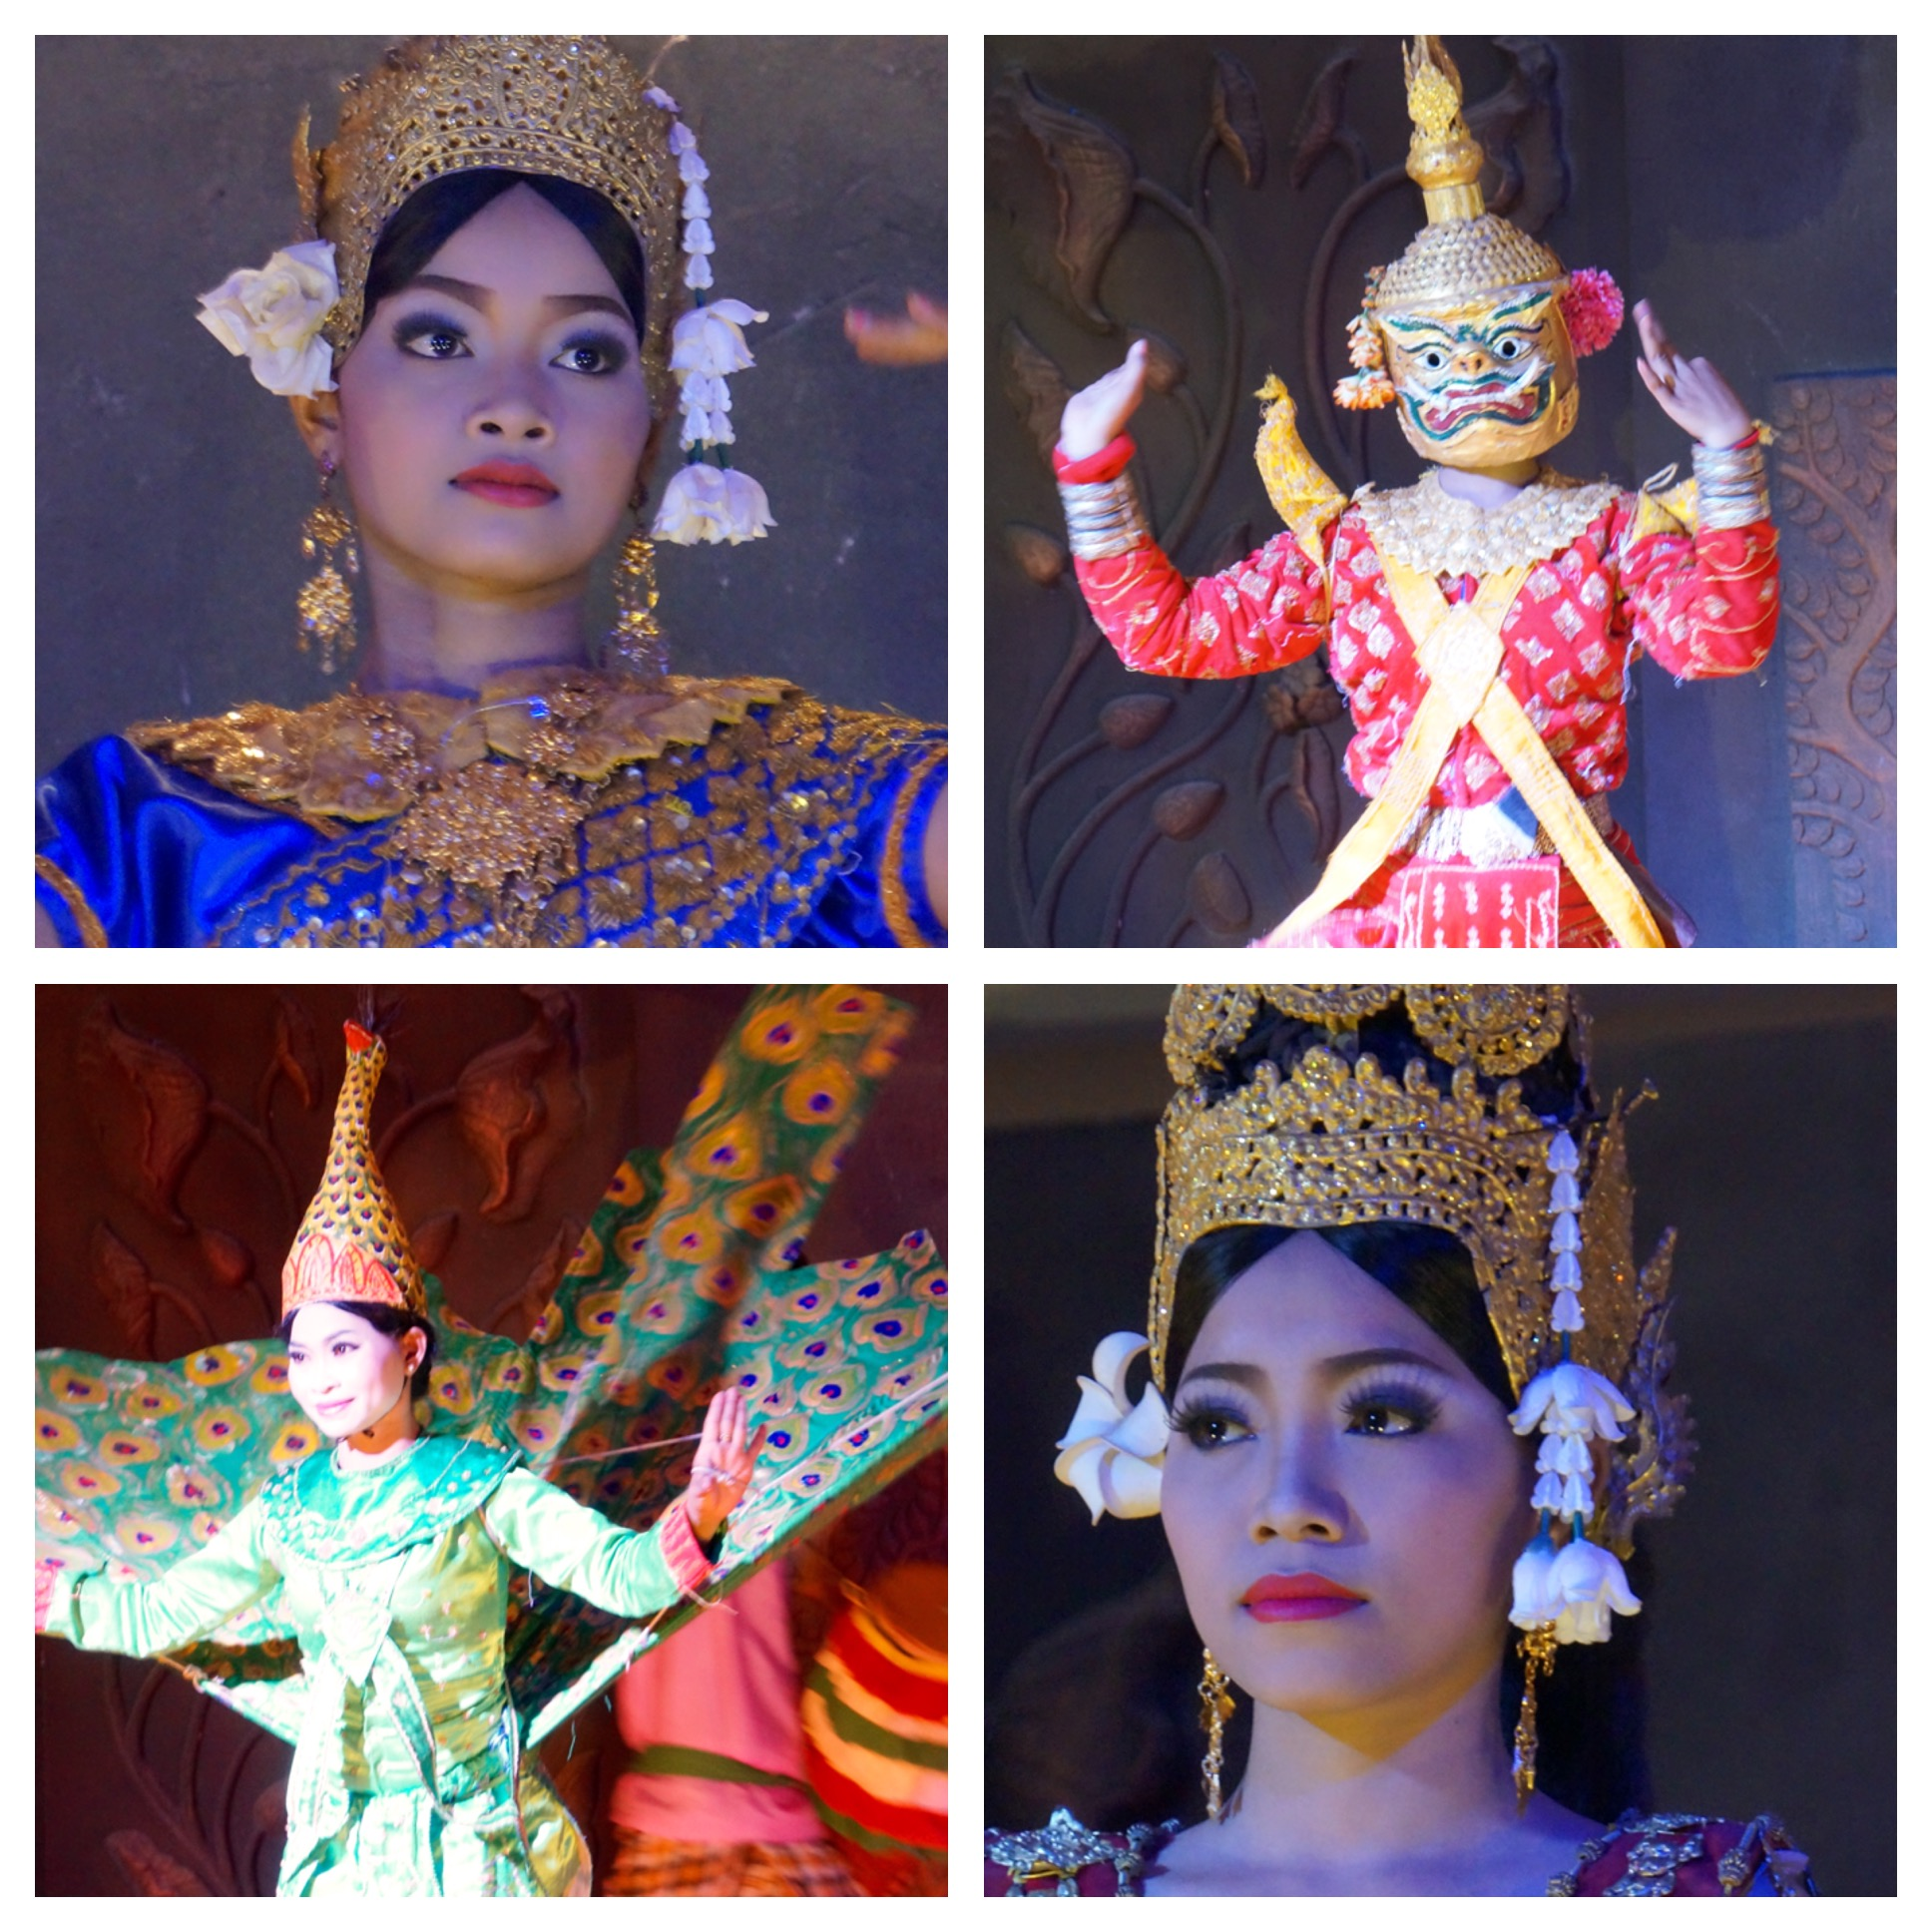 Dine ear with traditional Cambodian dances